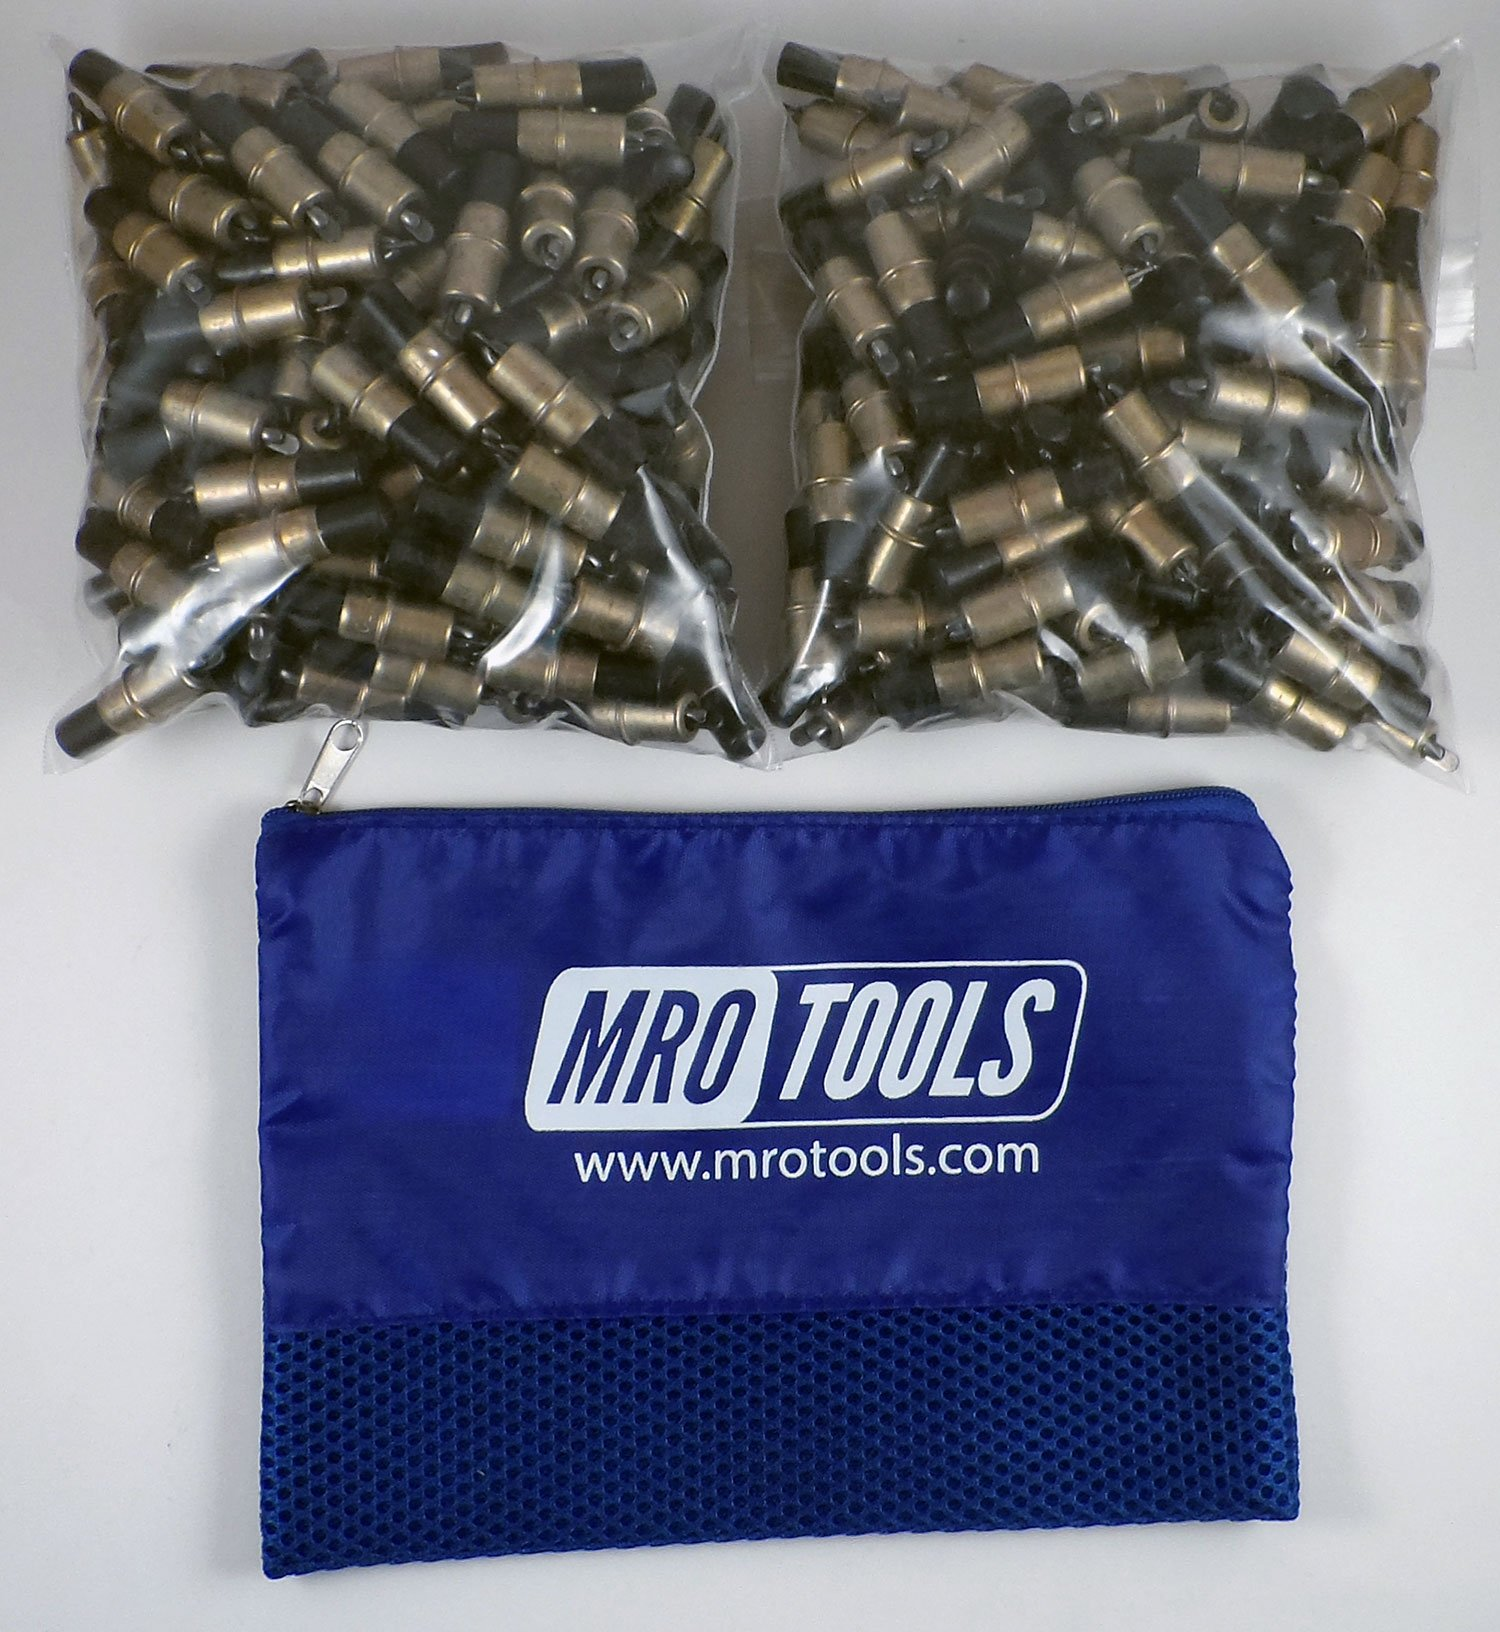 350 3/16 Extra Short Cleco Sheet Metal Fasteners w/ Mesh Carry Bag (KK2S350-3/16) by MRO Tools Cleco Fasteners